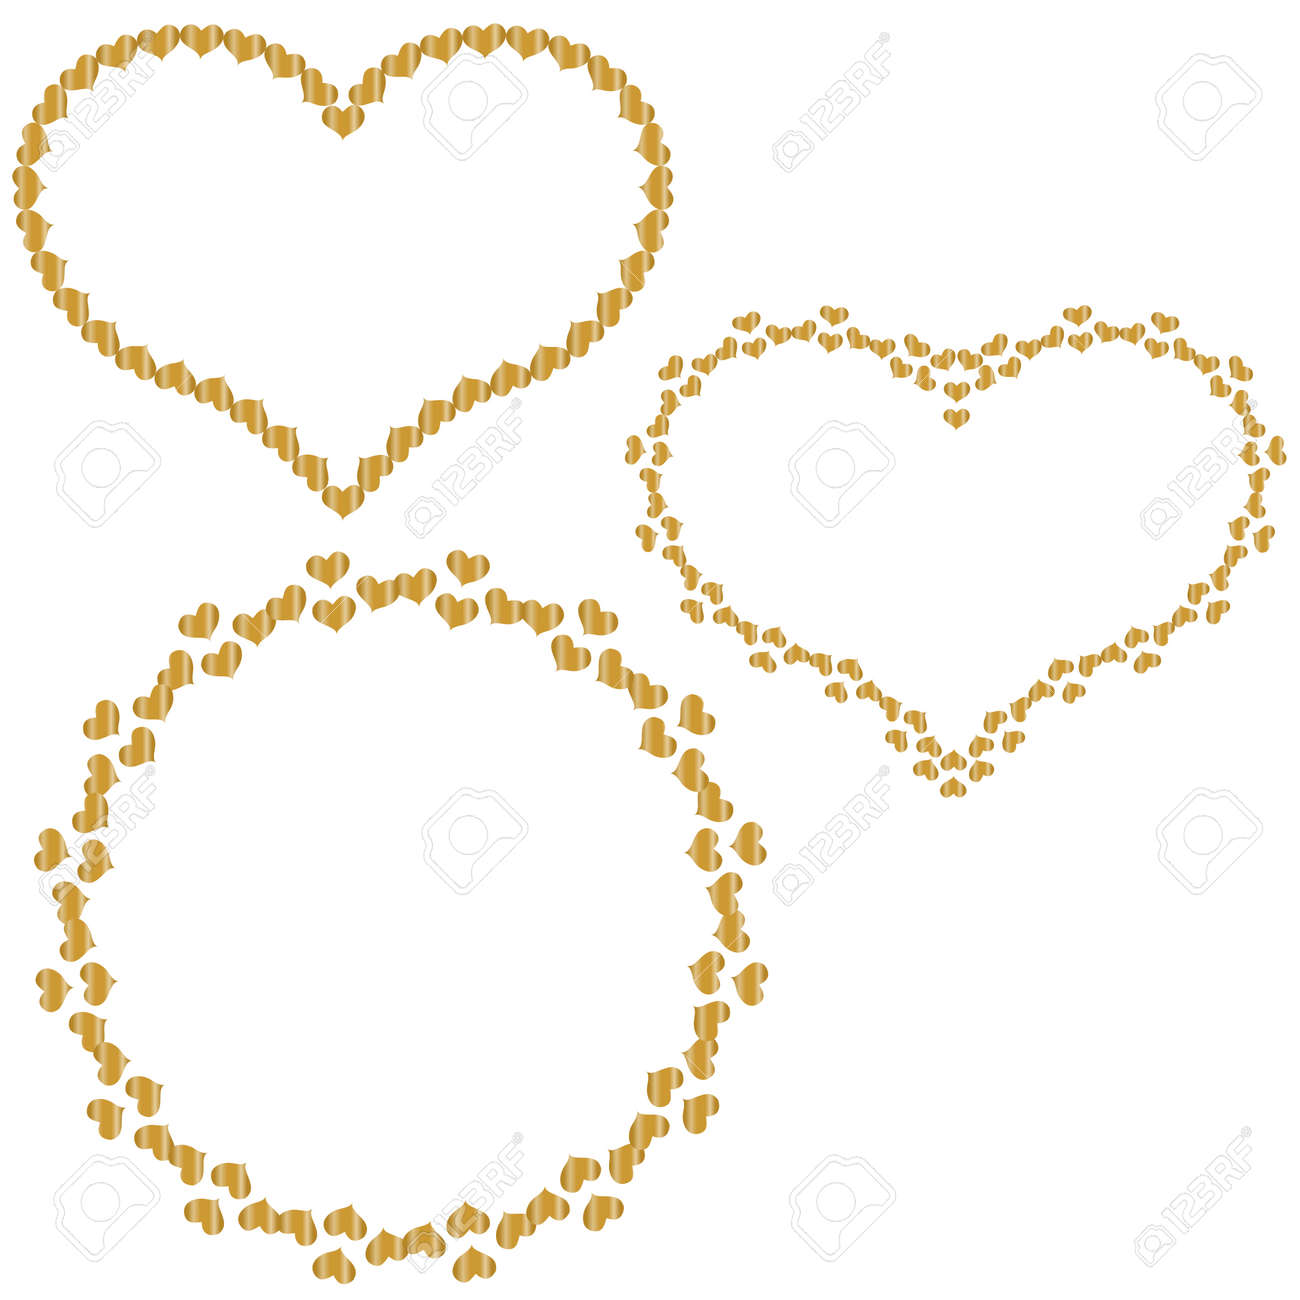 Set Of Frames In The Shape Of Heart Of Small Gold Hearts Isolated